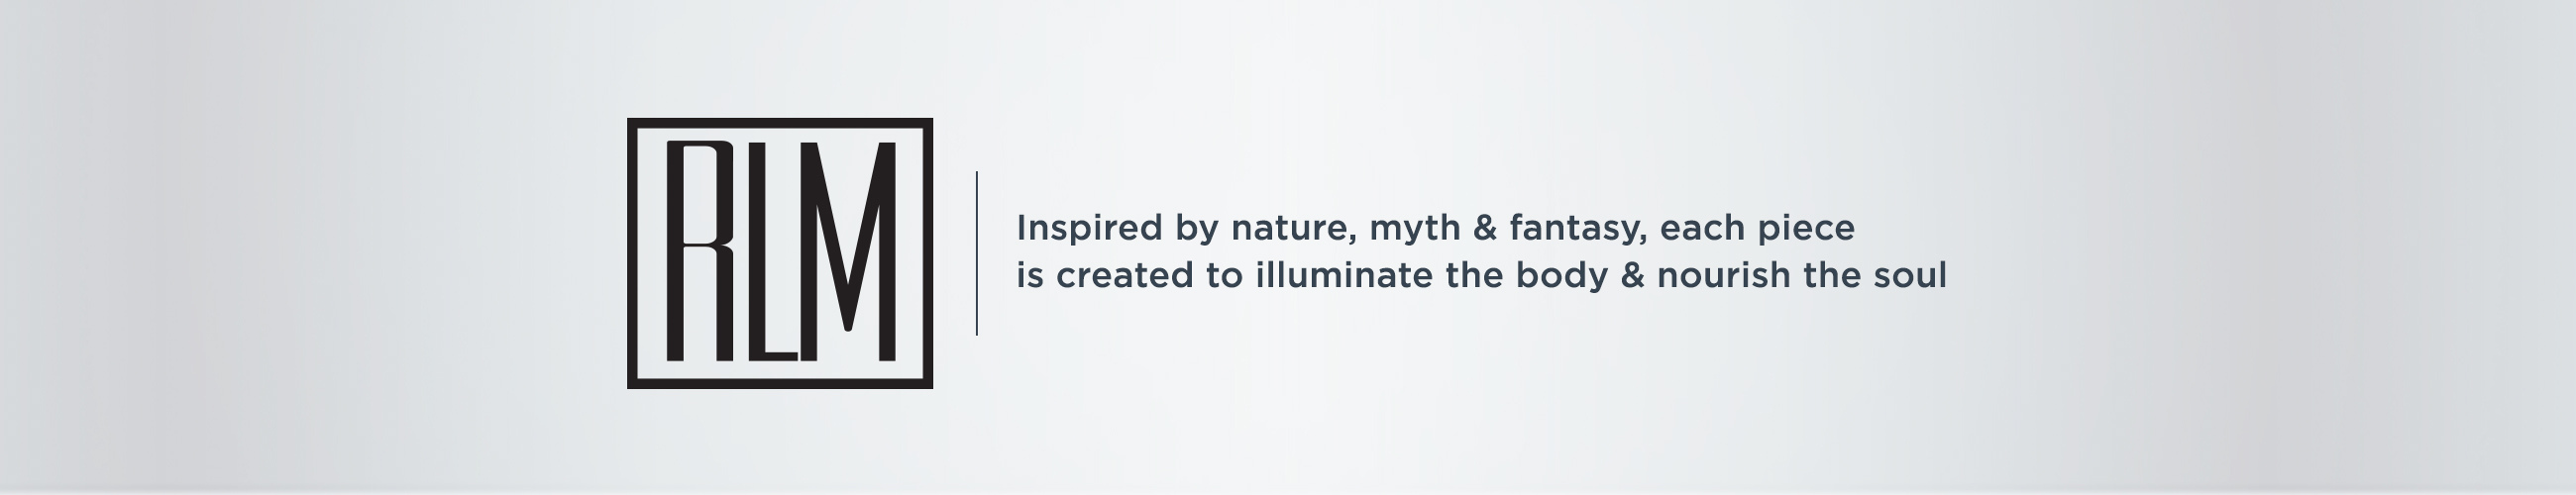 RLM — Inspired by nature, myth & fantasy, each piece is created to illuminate the body & nourish the soul